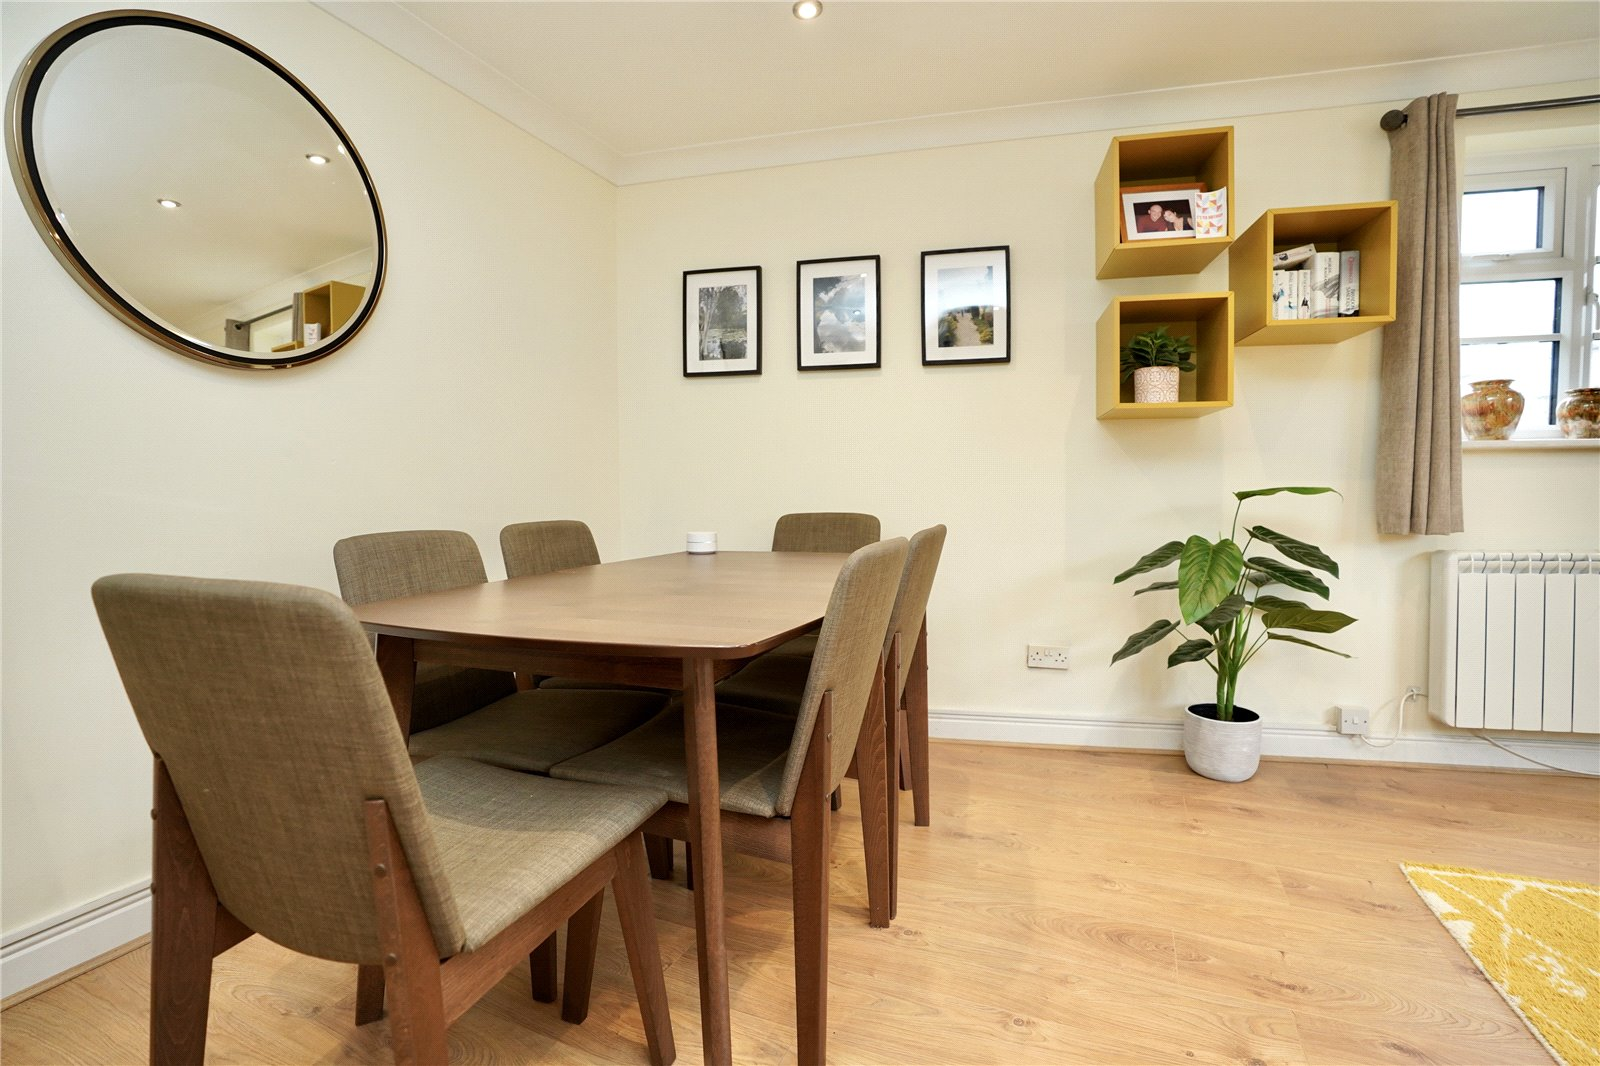 2 bed apartment for sale in Earith, PE28 3PP 5